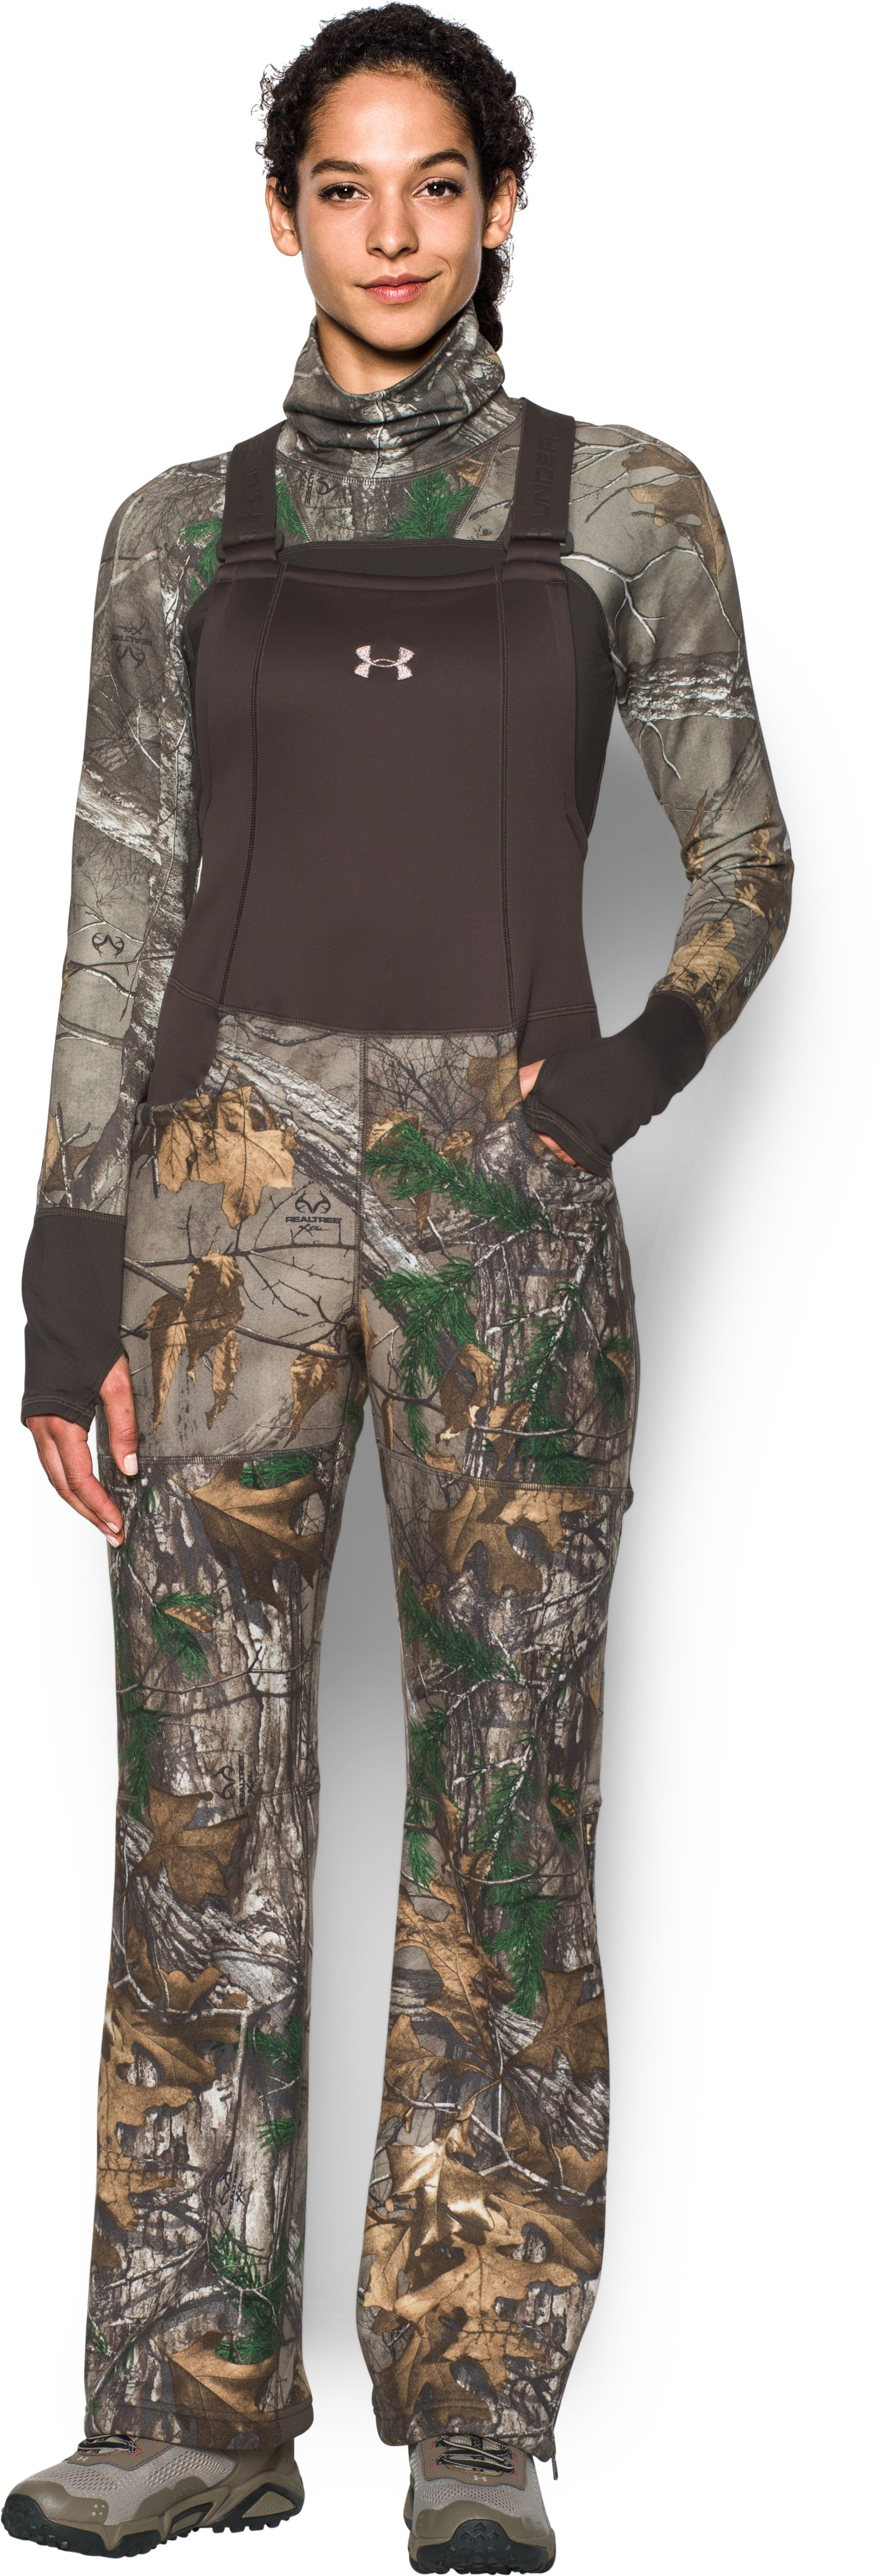 adult bibs Women's UA Mid Season Bib I also purchased the Women's HeatGearR EVO Camo Long Sleeve shirt and it makes a perfect set....Cute Bibs...Best pair hunting pants I've gotten yet.